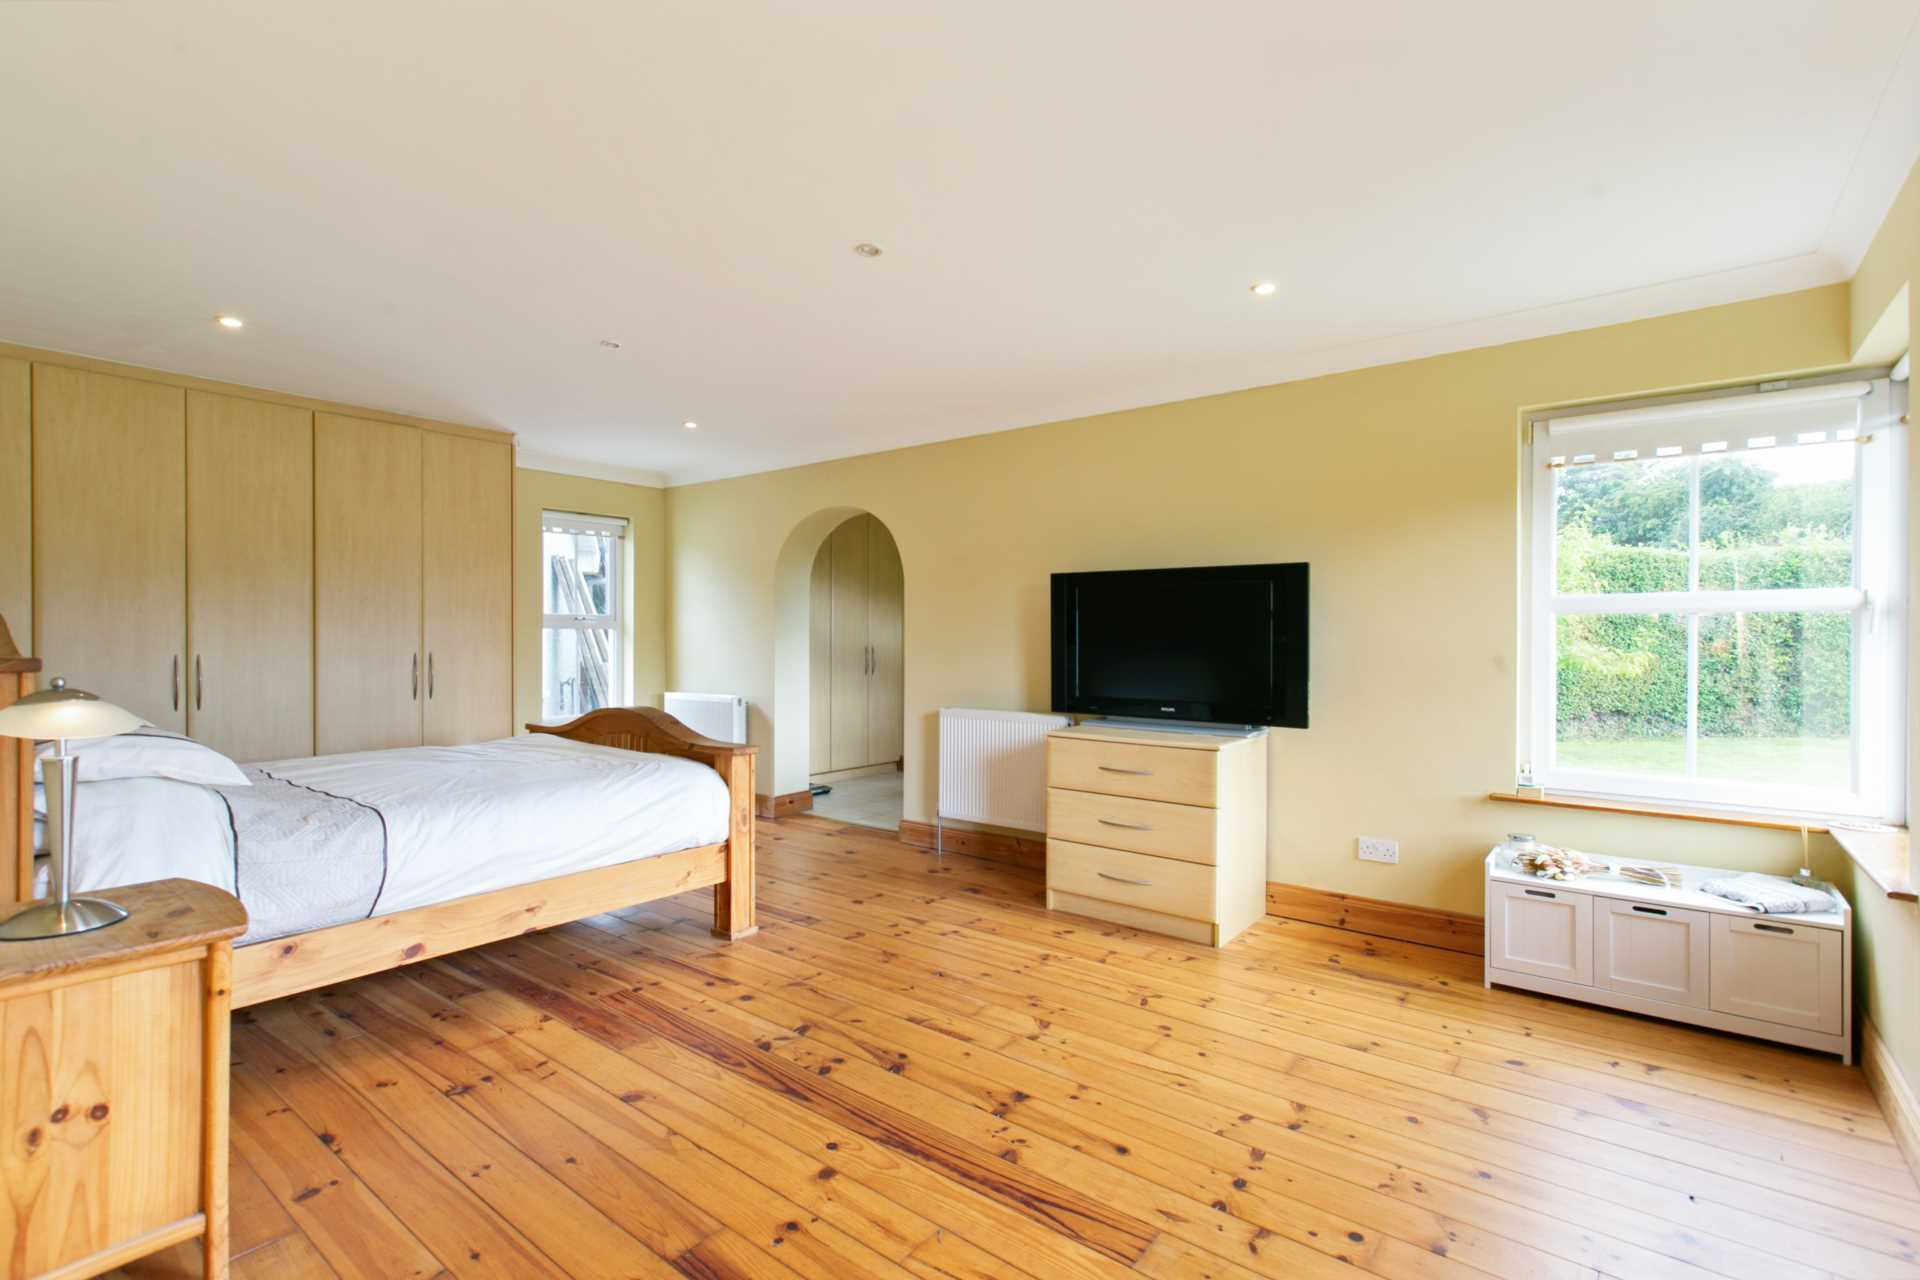 20a Old Court Cottages, Ballycullen, Dublin 24, Image 9